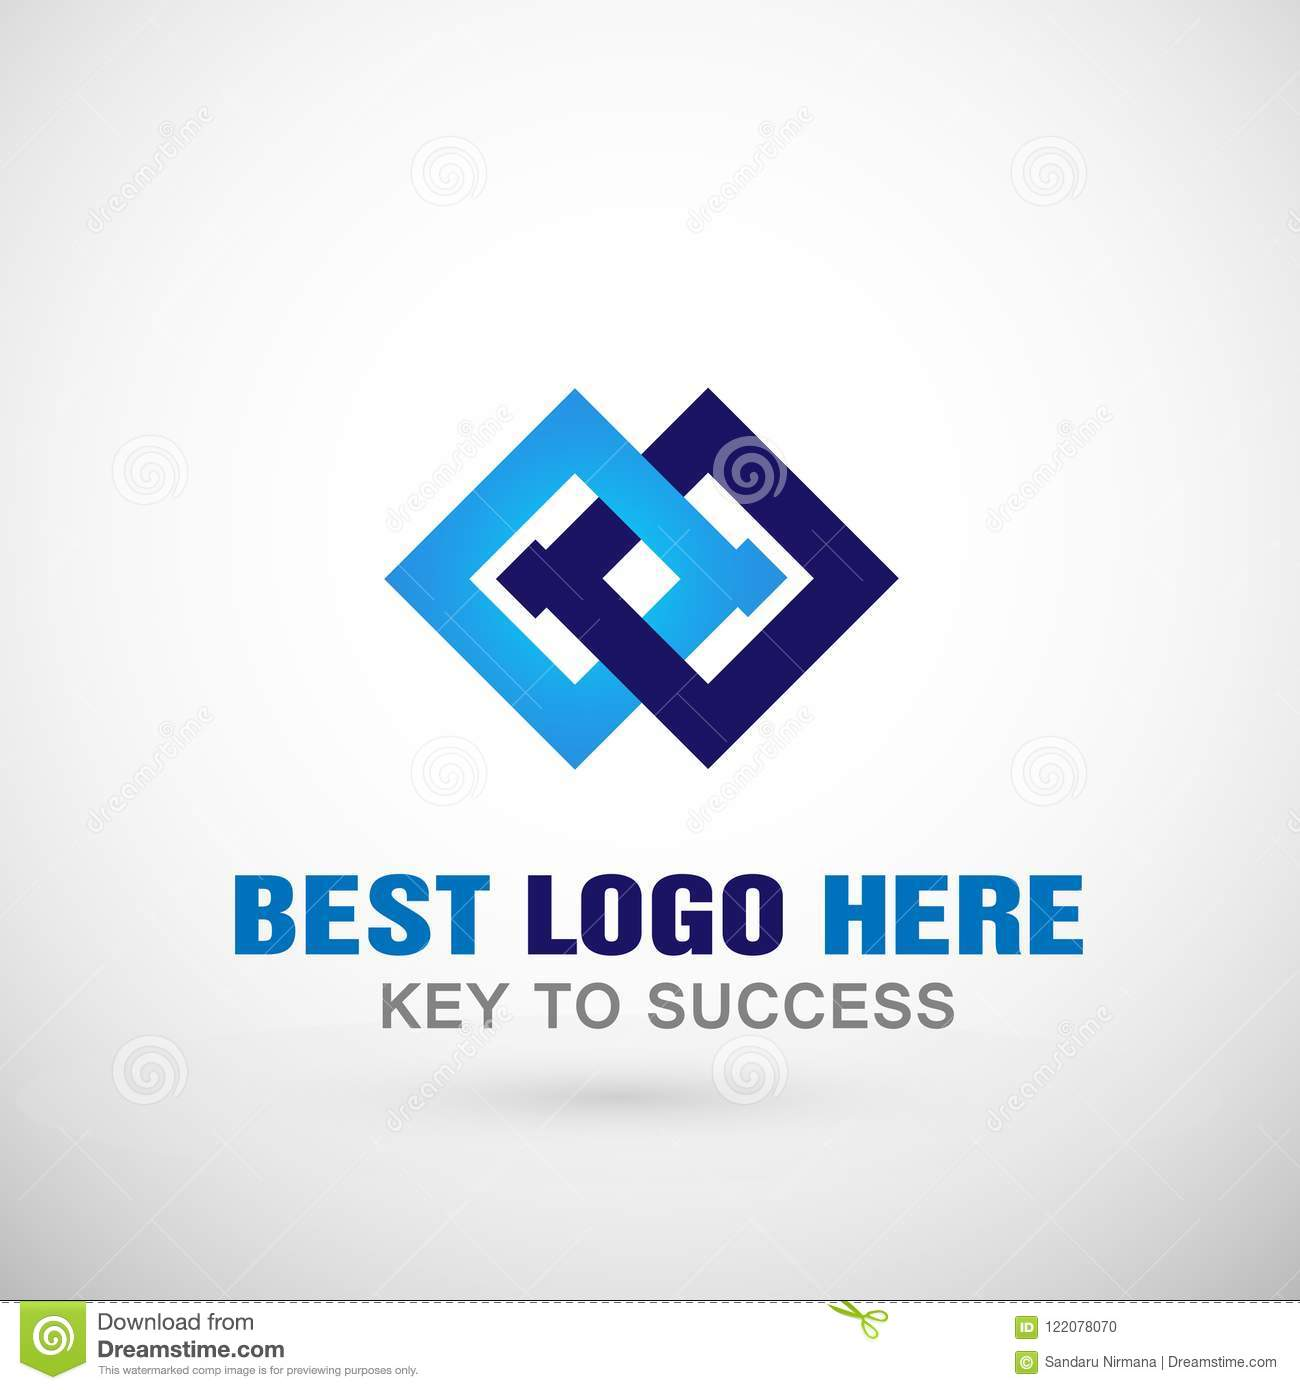 Abstract two square Logo, success on Corporate connections communication concept Business Logo for company